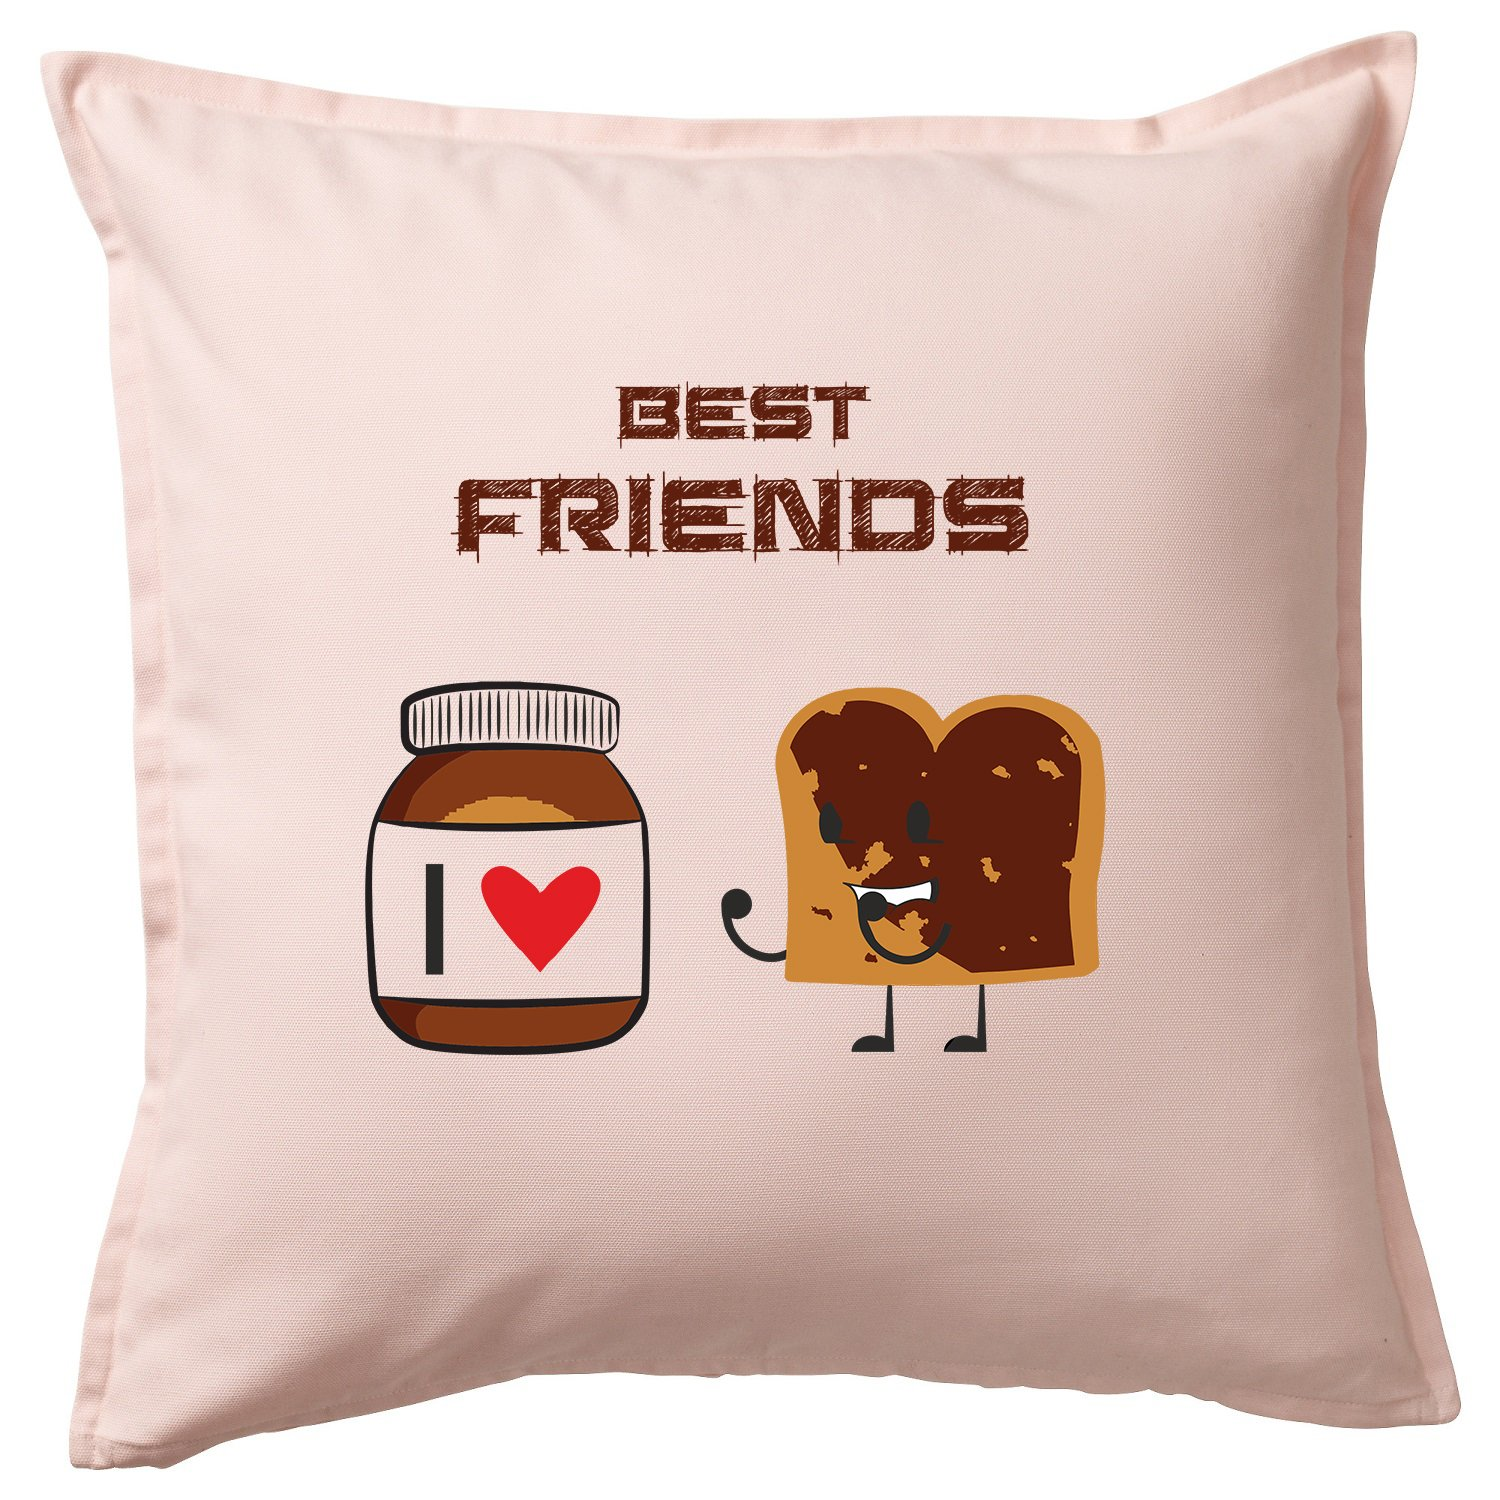 Cuscino nutella Funny/Cushion & Pillow Baumwolle